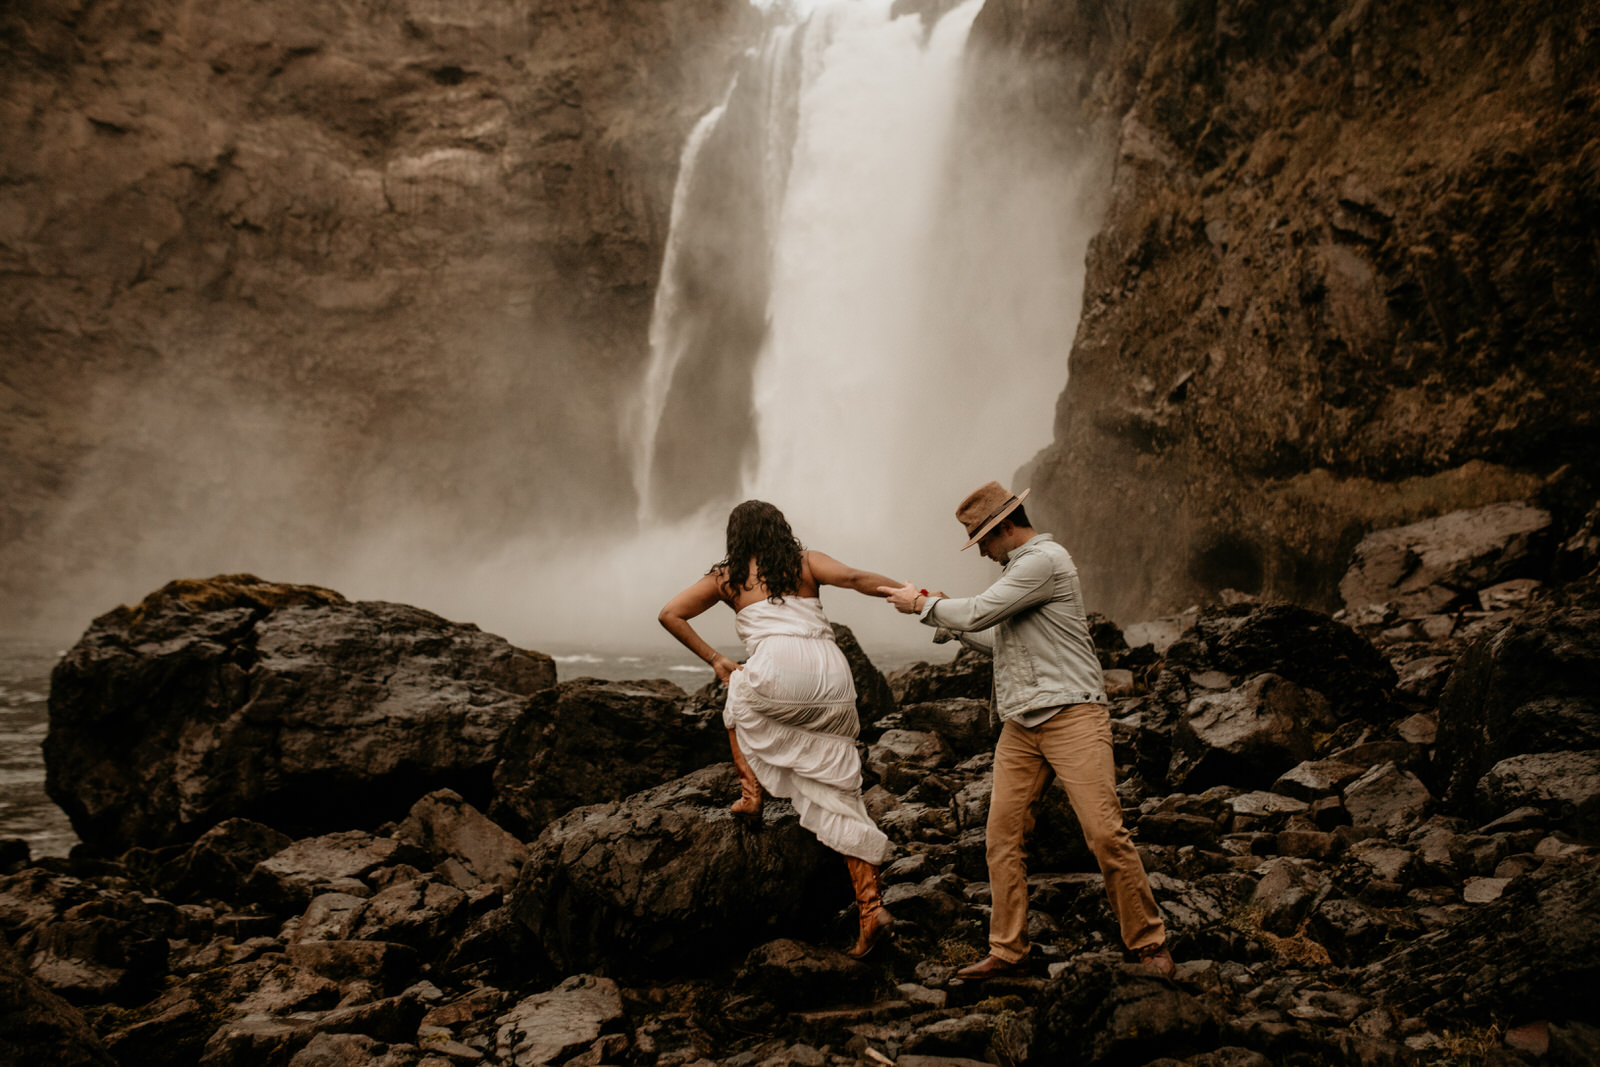 Snoqualmie falls engagement photos - snoqualmie pass engagement photos - snoqualmie falls - Issaquah engagement photos - Seattle elopement photographer - pnw elopement photographer - tacoma elopement photographer - Seattle wedding photographer - tacoma wedding photographer - pnw wedding photographer - hire wedding photographers in seattle - adventure wedding photographer - wedding photographer under $2000 - tacoma wedding photographers - elopement wedding photographer - elopement photographer - rattlesnake lake engagement photos